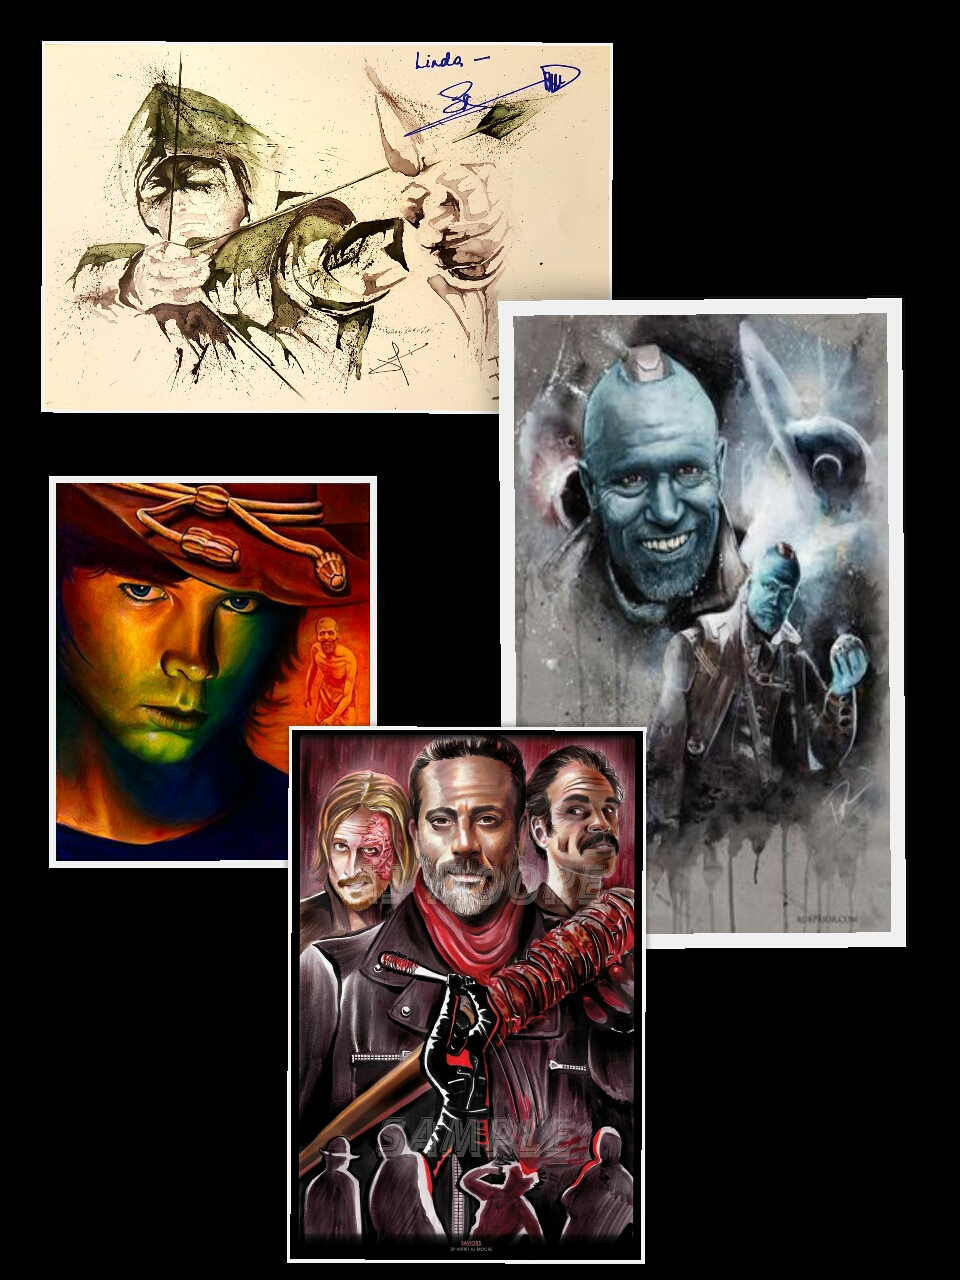 Fan Fest, Artists, Fan Art, JaCo Tartaruga, Rob Prior, AJ Moore, Scott Spillman